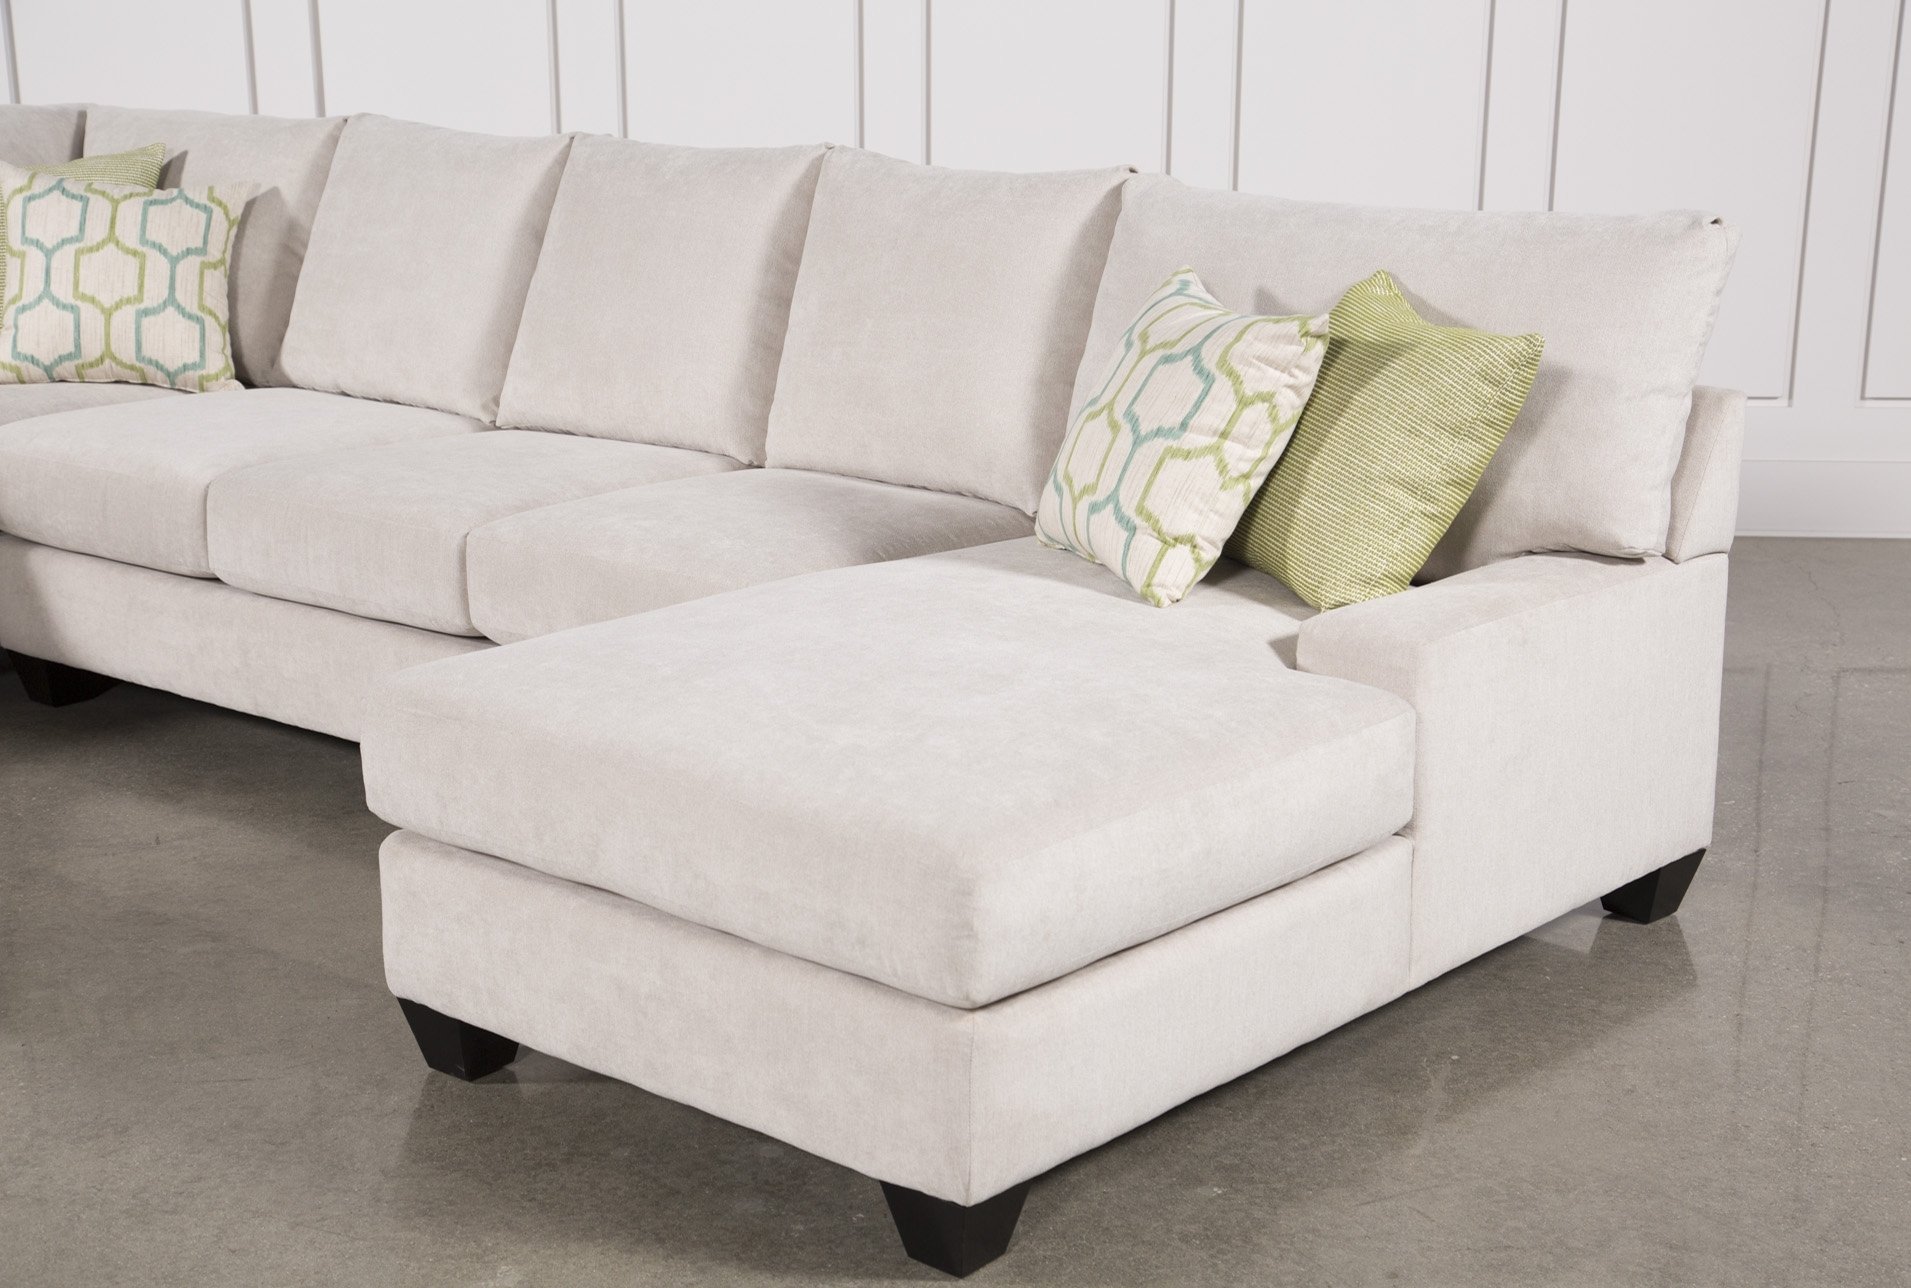 Harper Foam 3 Piece Sectional W/raf Chaise | Products | Pinterest intended for Harper Foam 3 Piece Sectionals With Raf Chaise (Image 10 of 30)